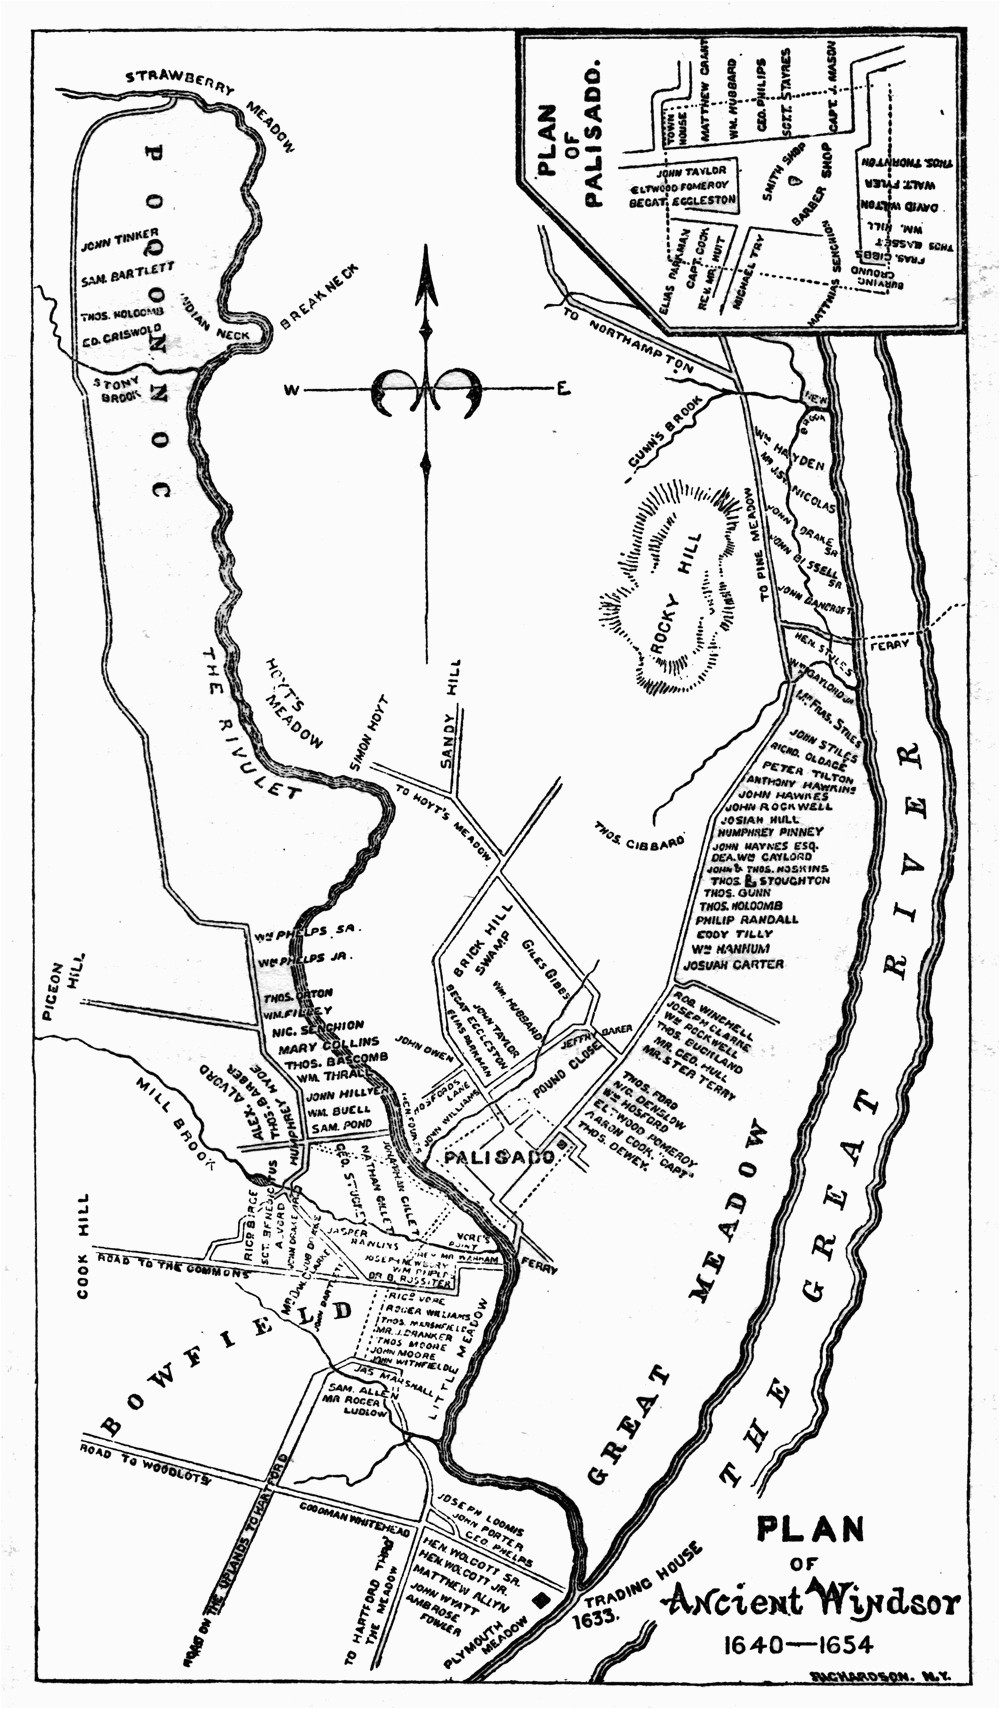 Windsor On Canada Map File Map Windsor Connecticut 1654 Jpg Wikimedia Commons